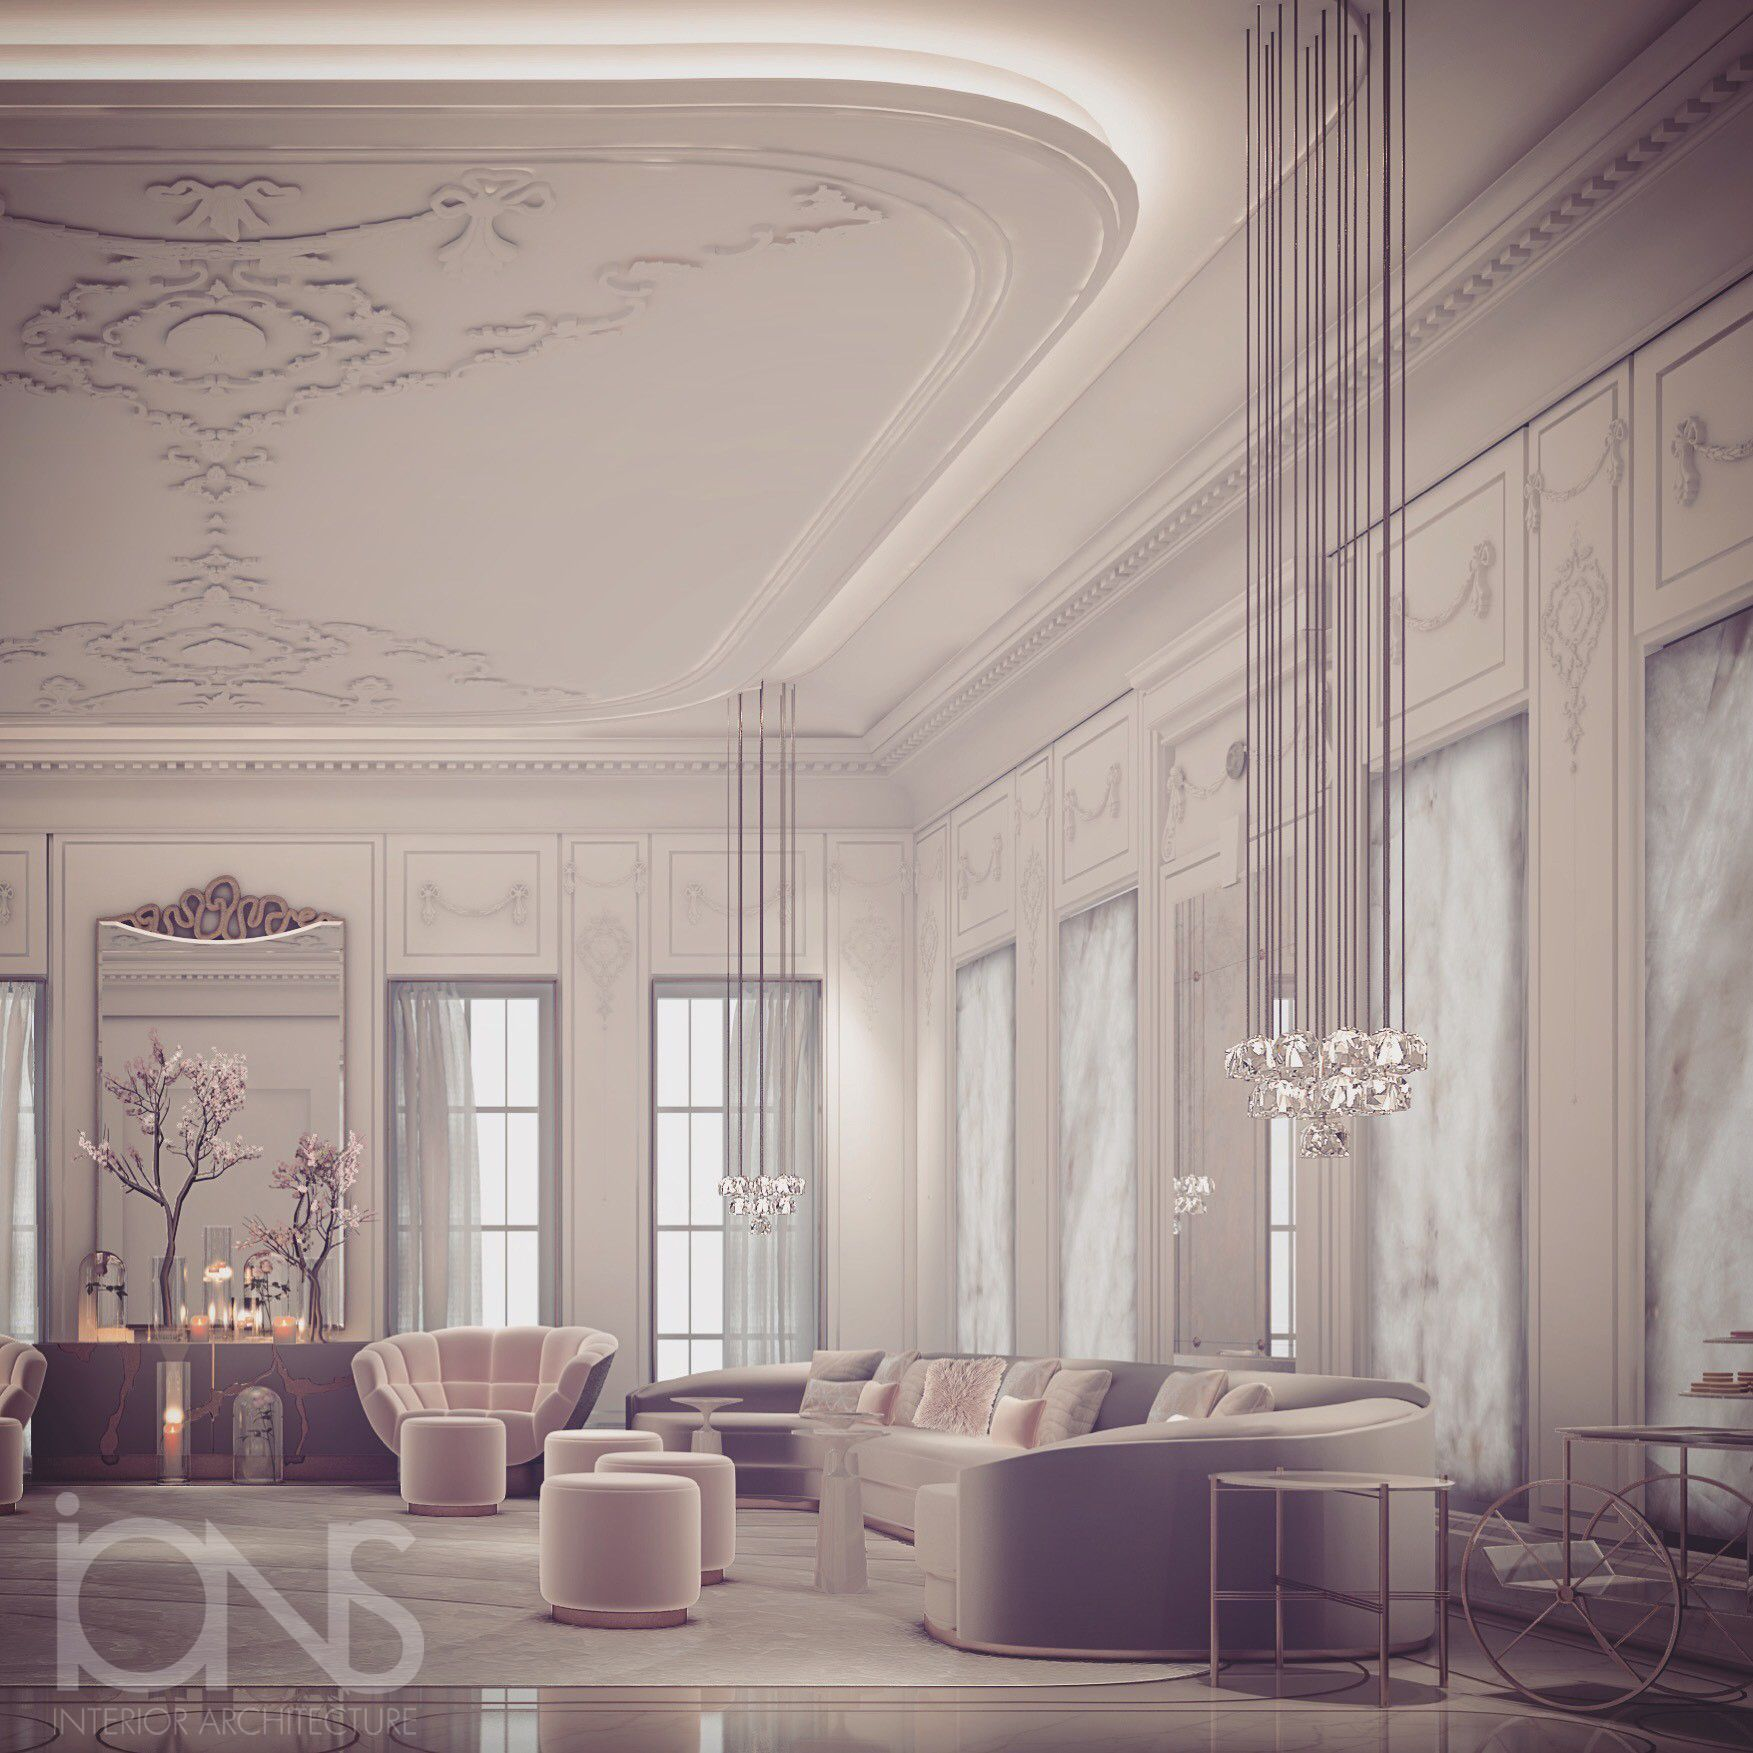 Ions Interior Design Dubai majlis design by ions (with images) | classic interior